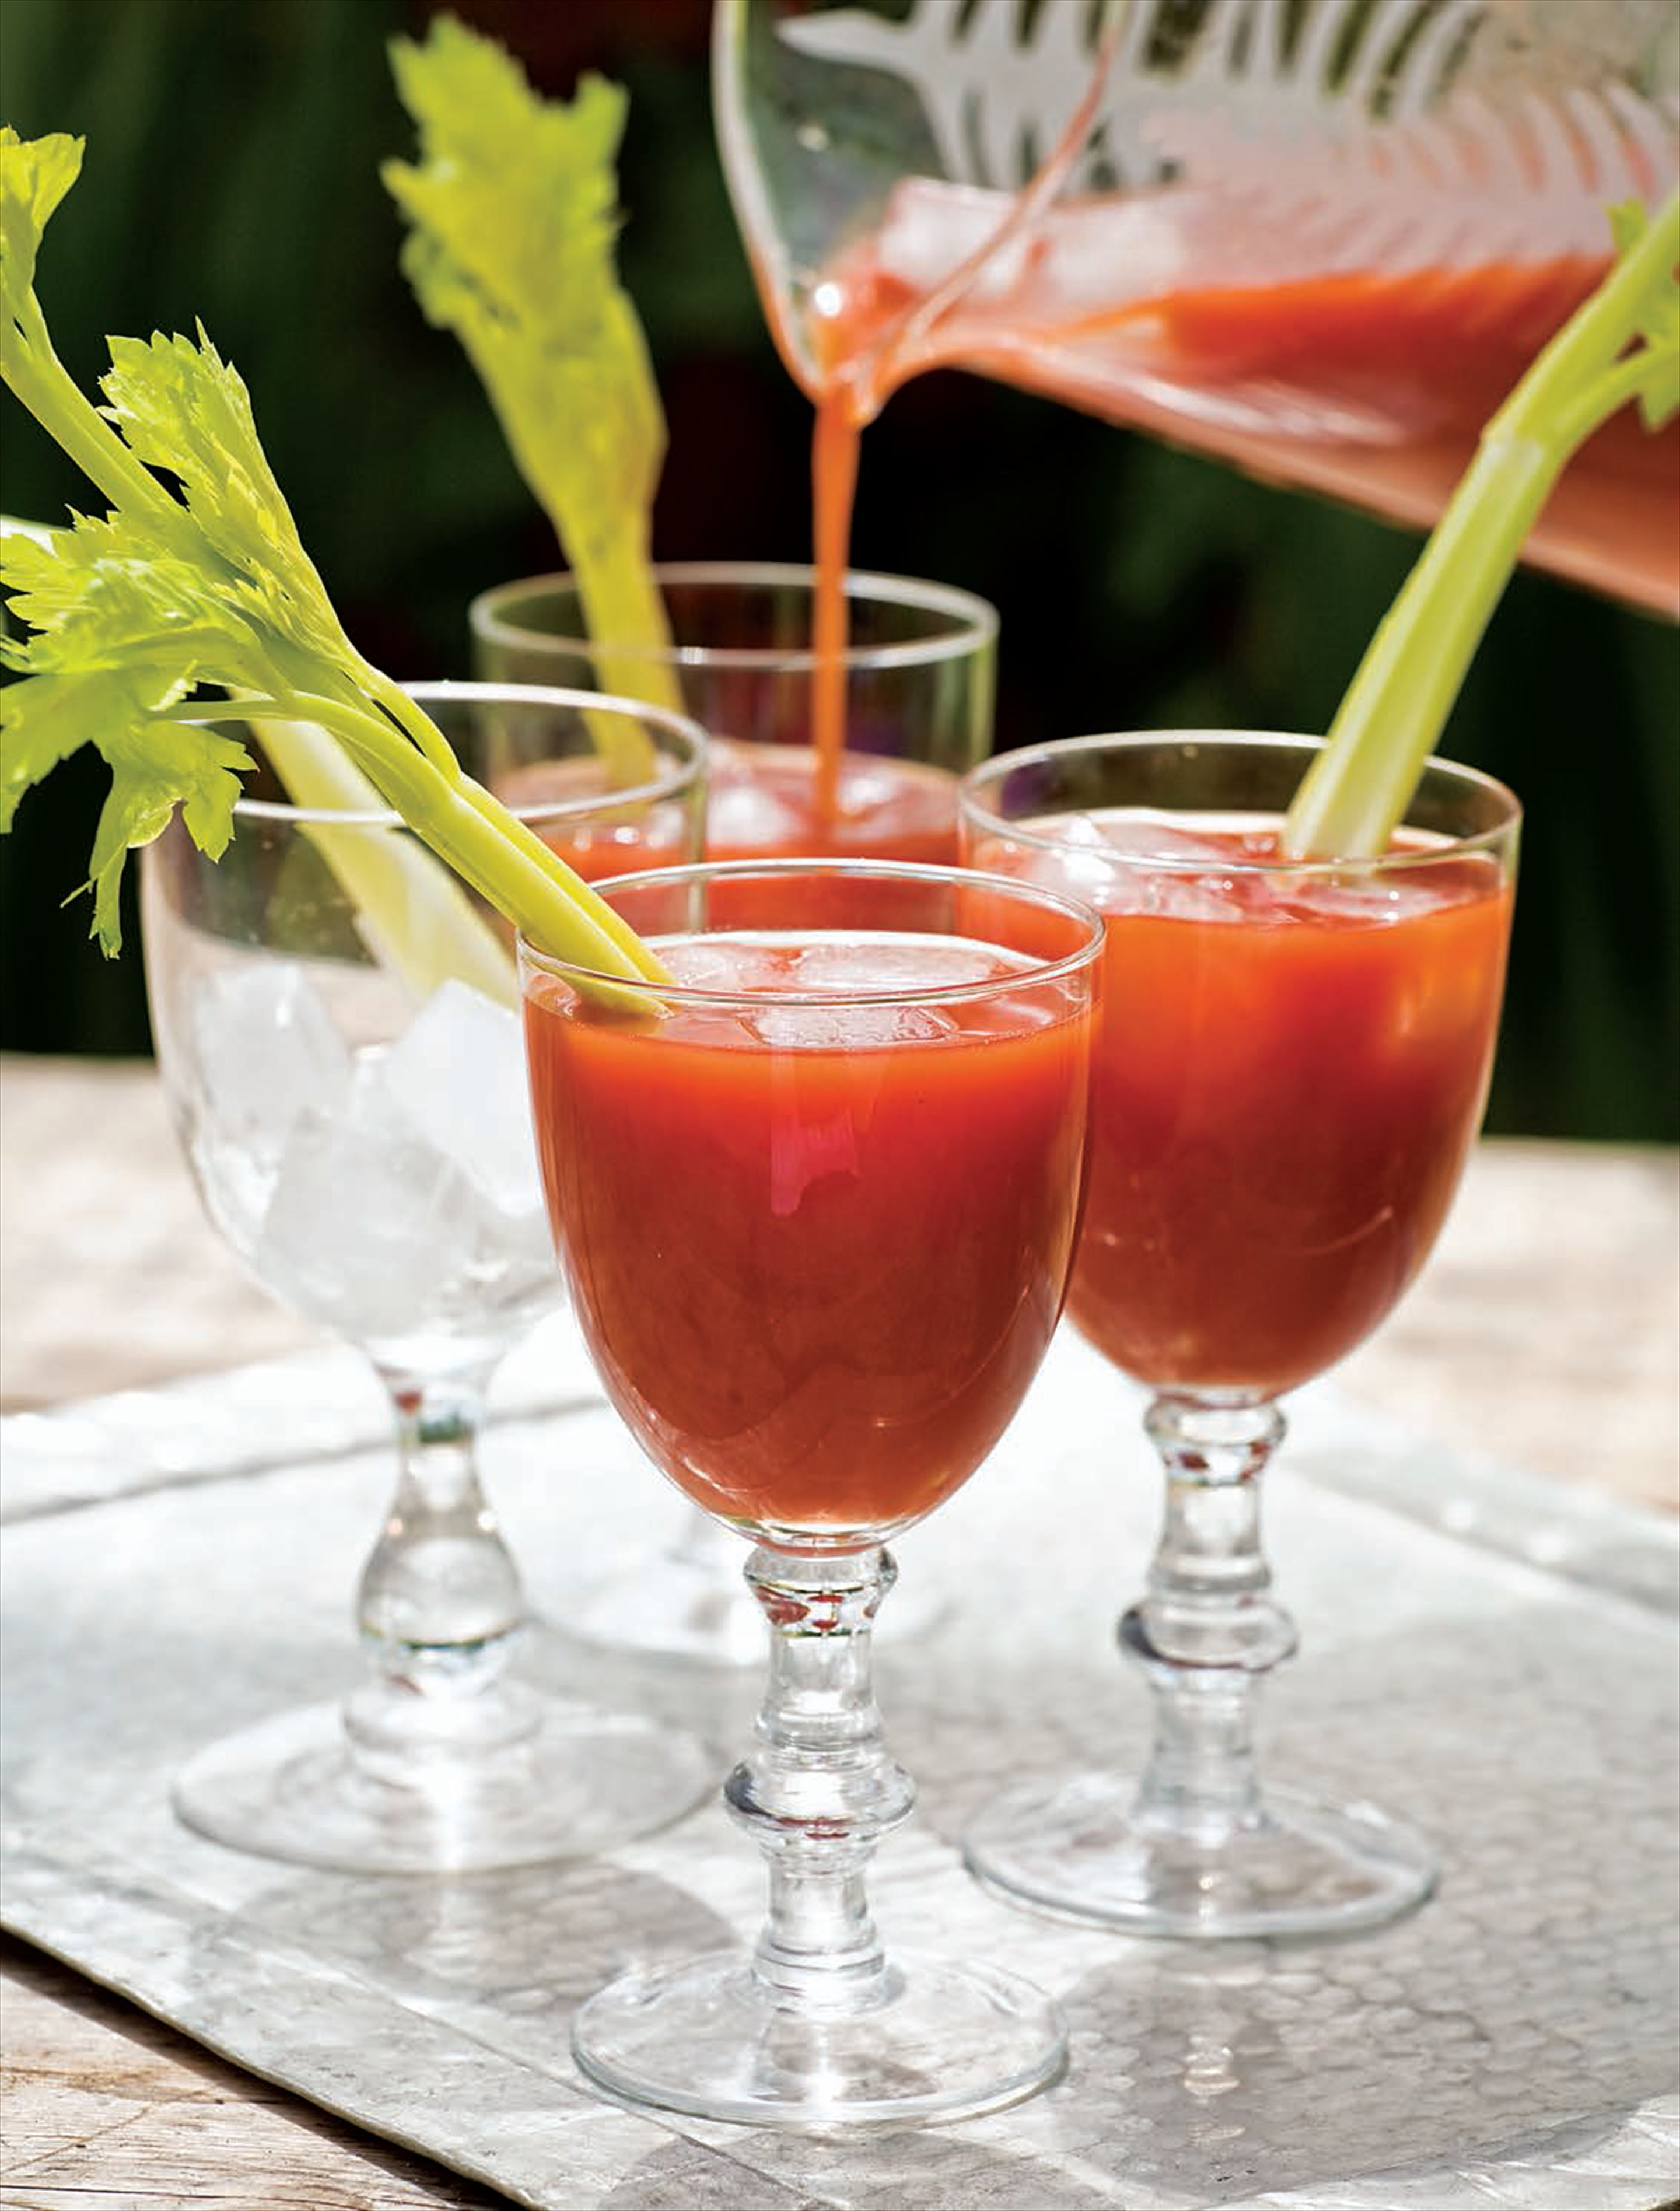 Bloody Mary with horseradish